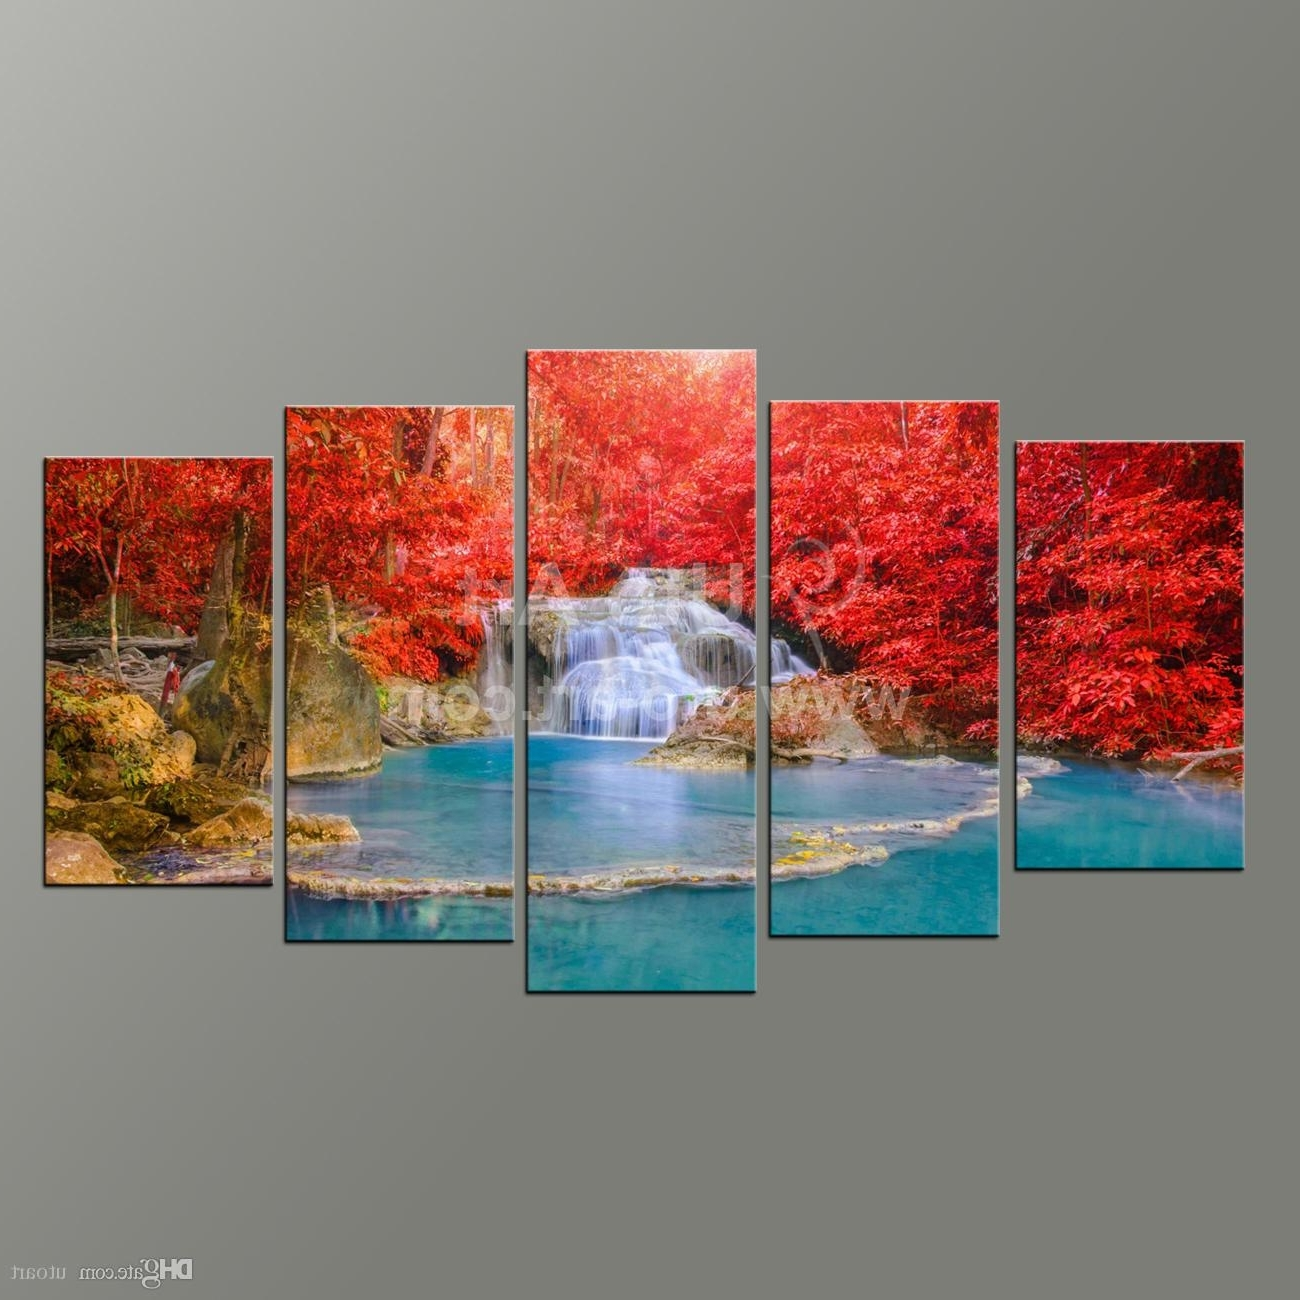 Newest Wall Art Paintings Intended For 2018 5 Panel Wall Art Paintings Landscaping Waterfall Picture And (View 12 of 20)